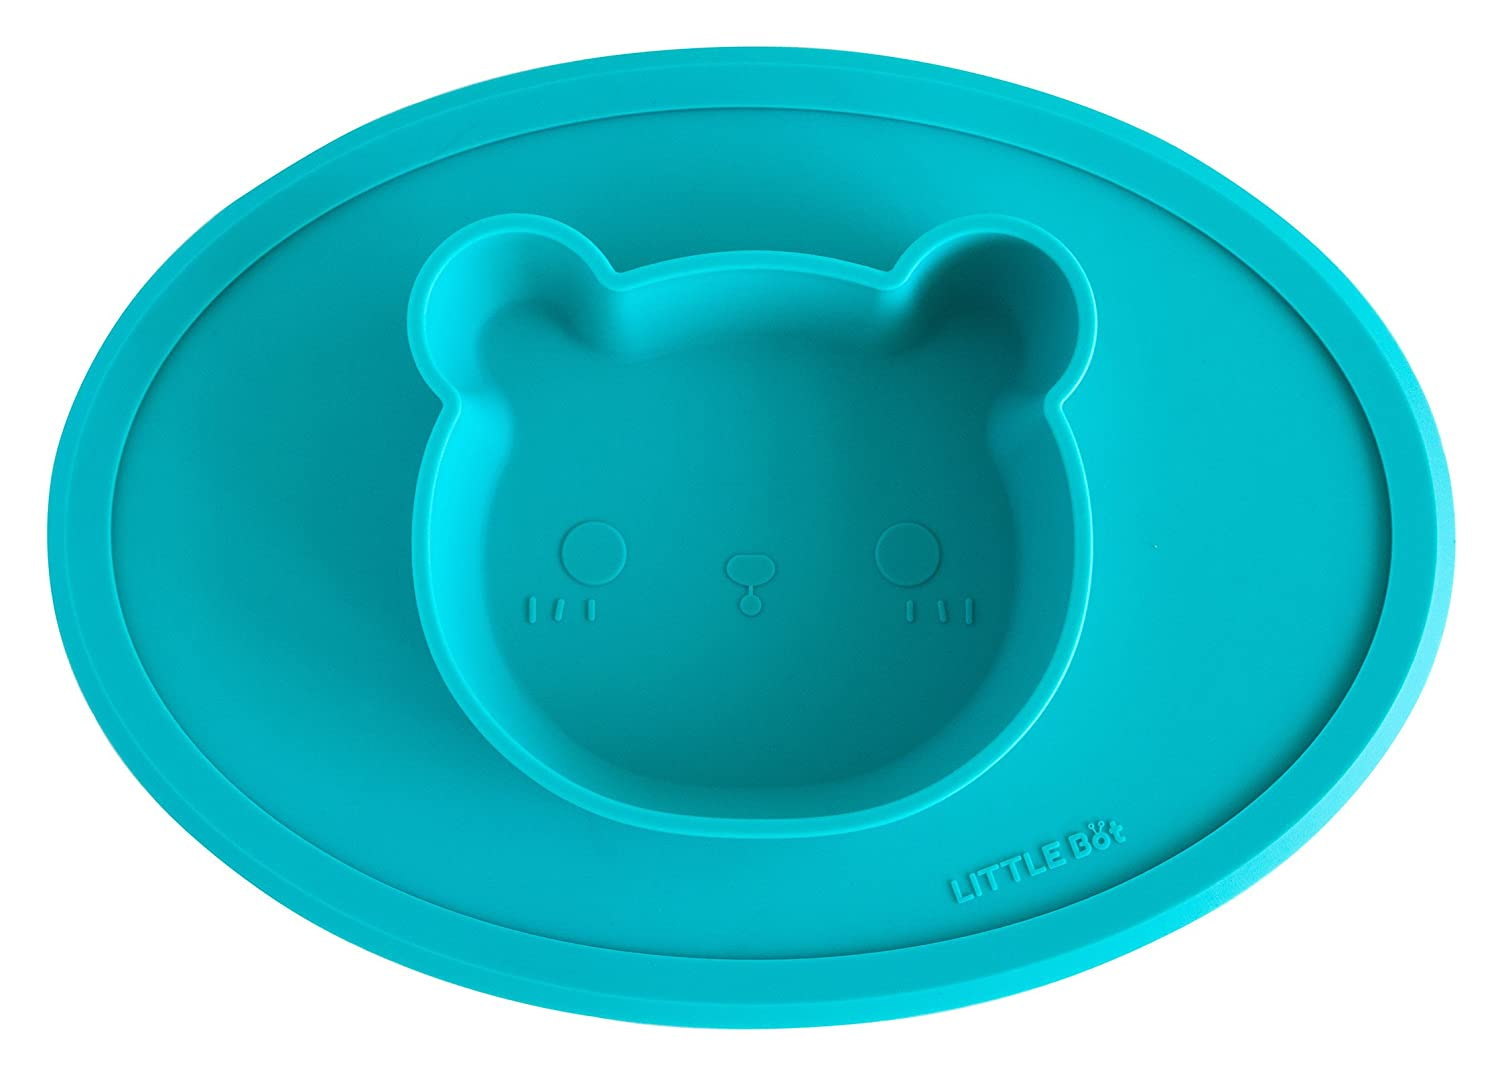 Little Bot Baby Placemat and Bowl one-piece, silicone, bear by Little Bot Little Bot Inc.